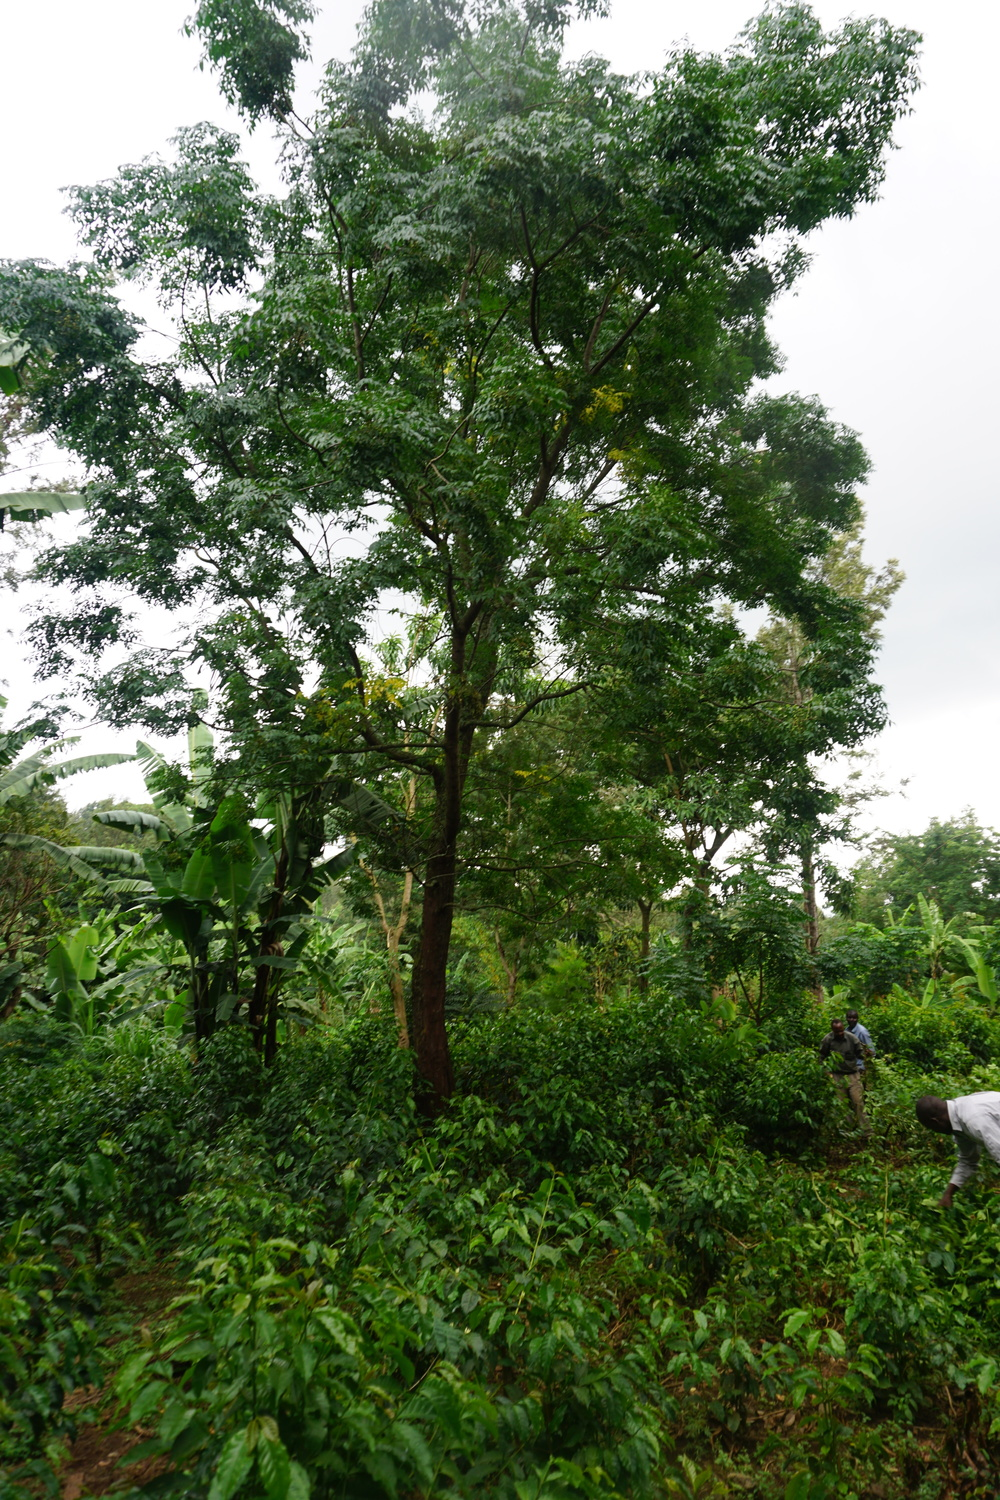 A moringa tree in the middle of the nursing shrub area.